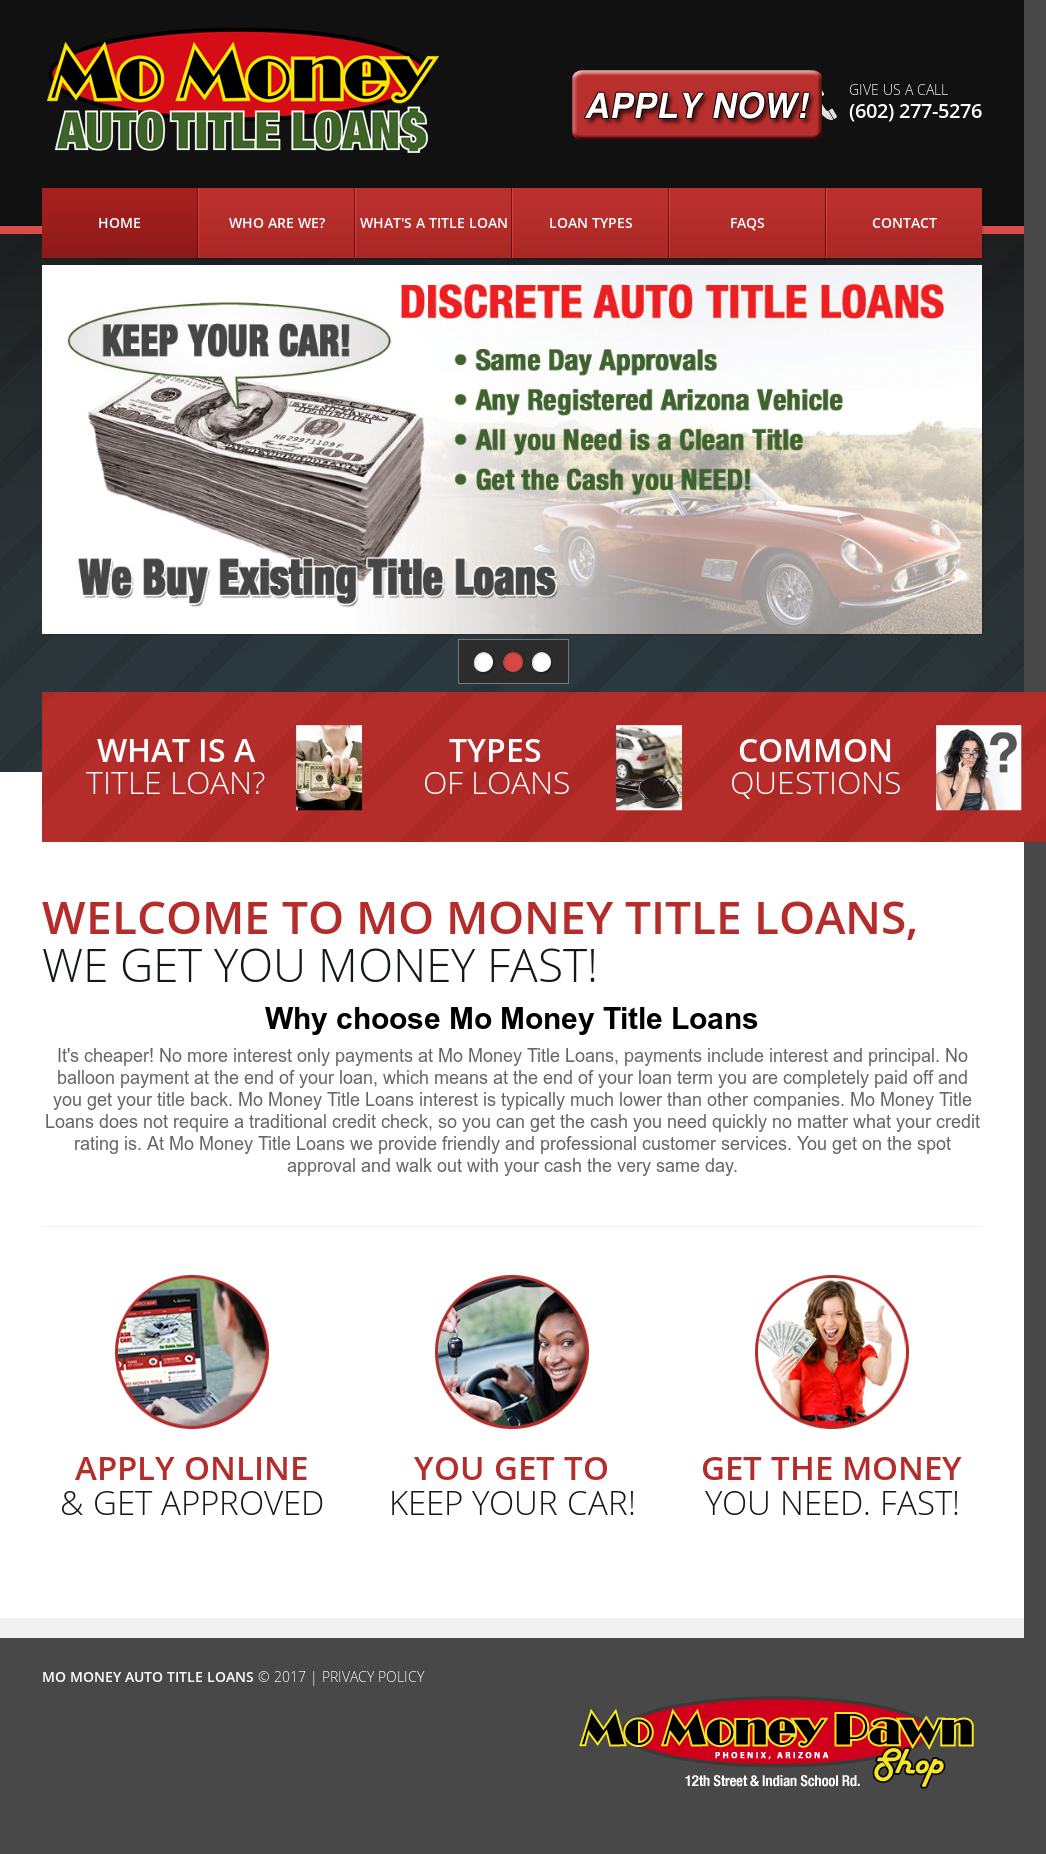 I need to consolidate my payday loans image 7